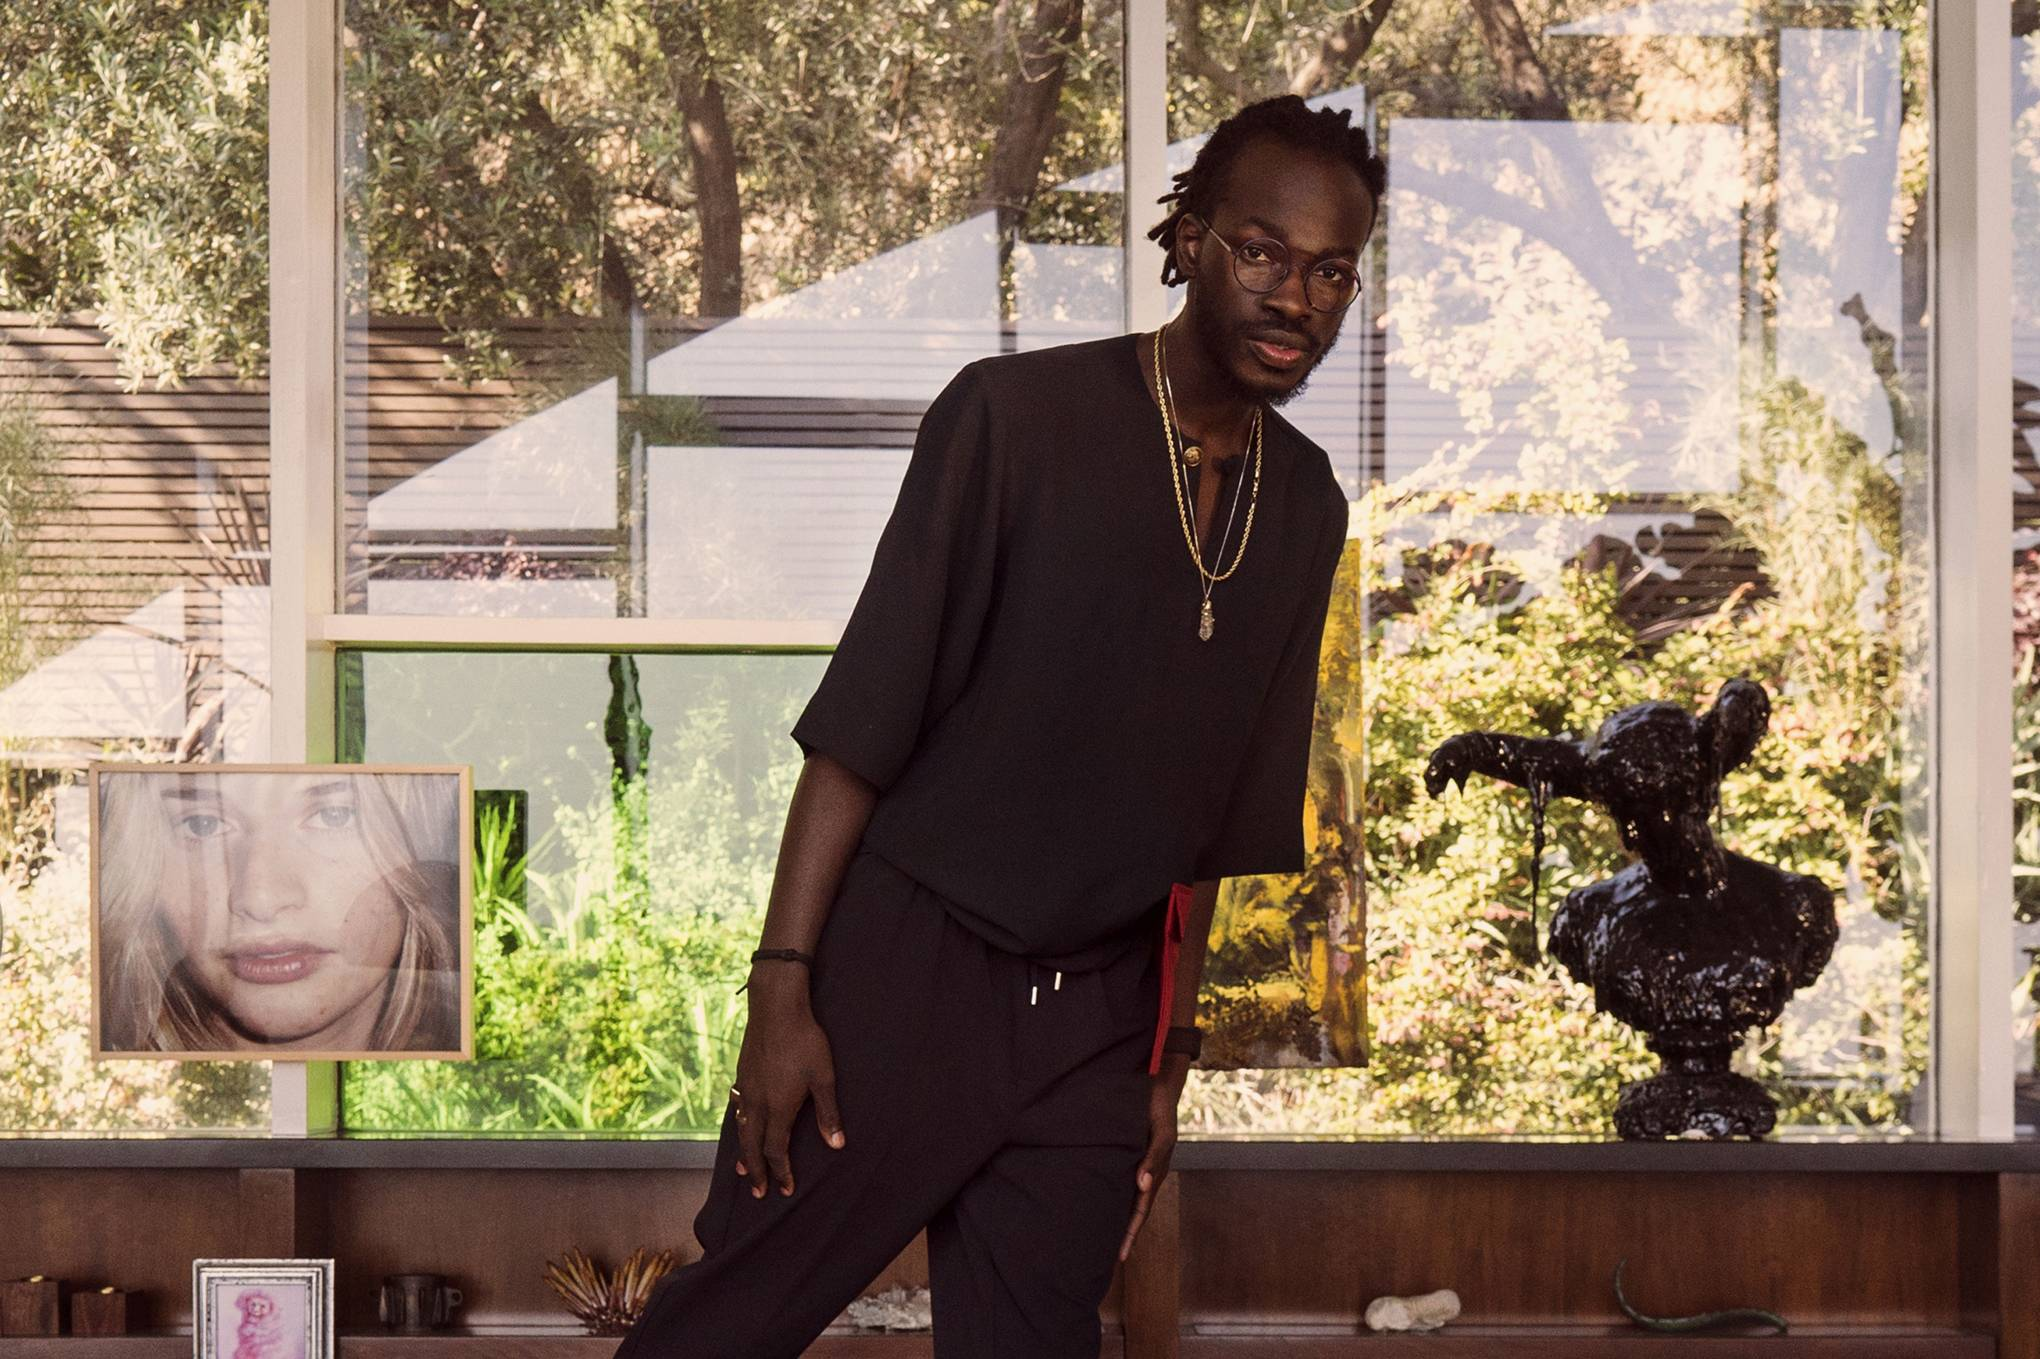 Iddris Sandu worked for Uber, Google and Kanye. Now he wants to fix tech's diversity problem